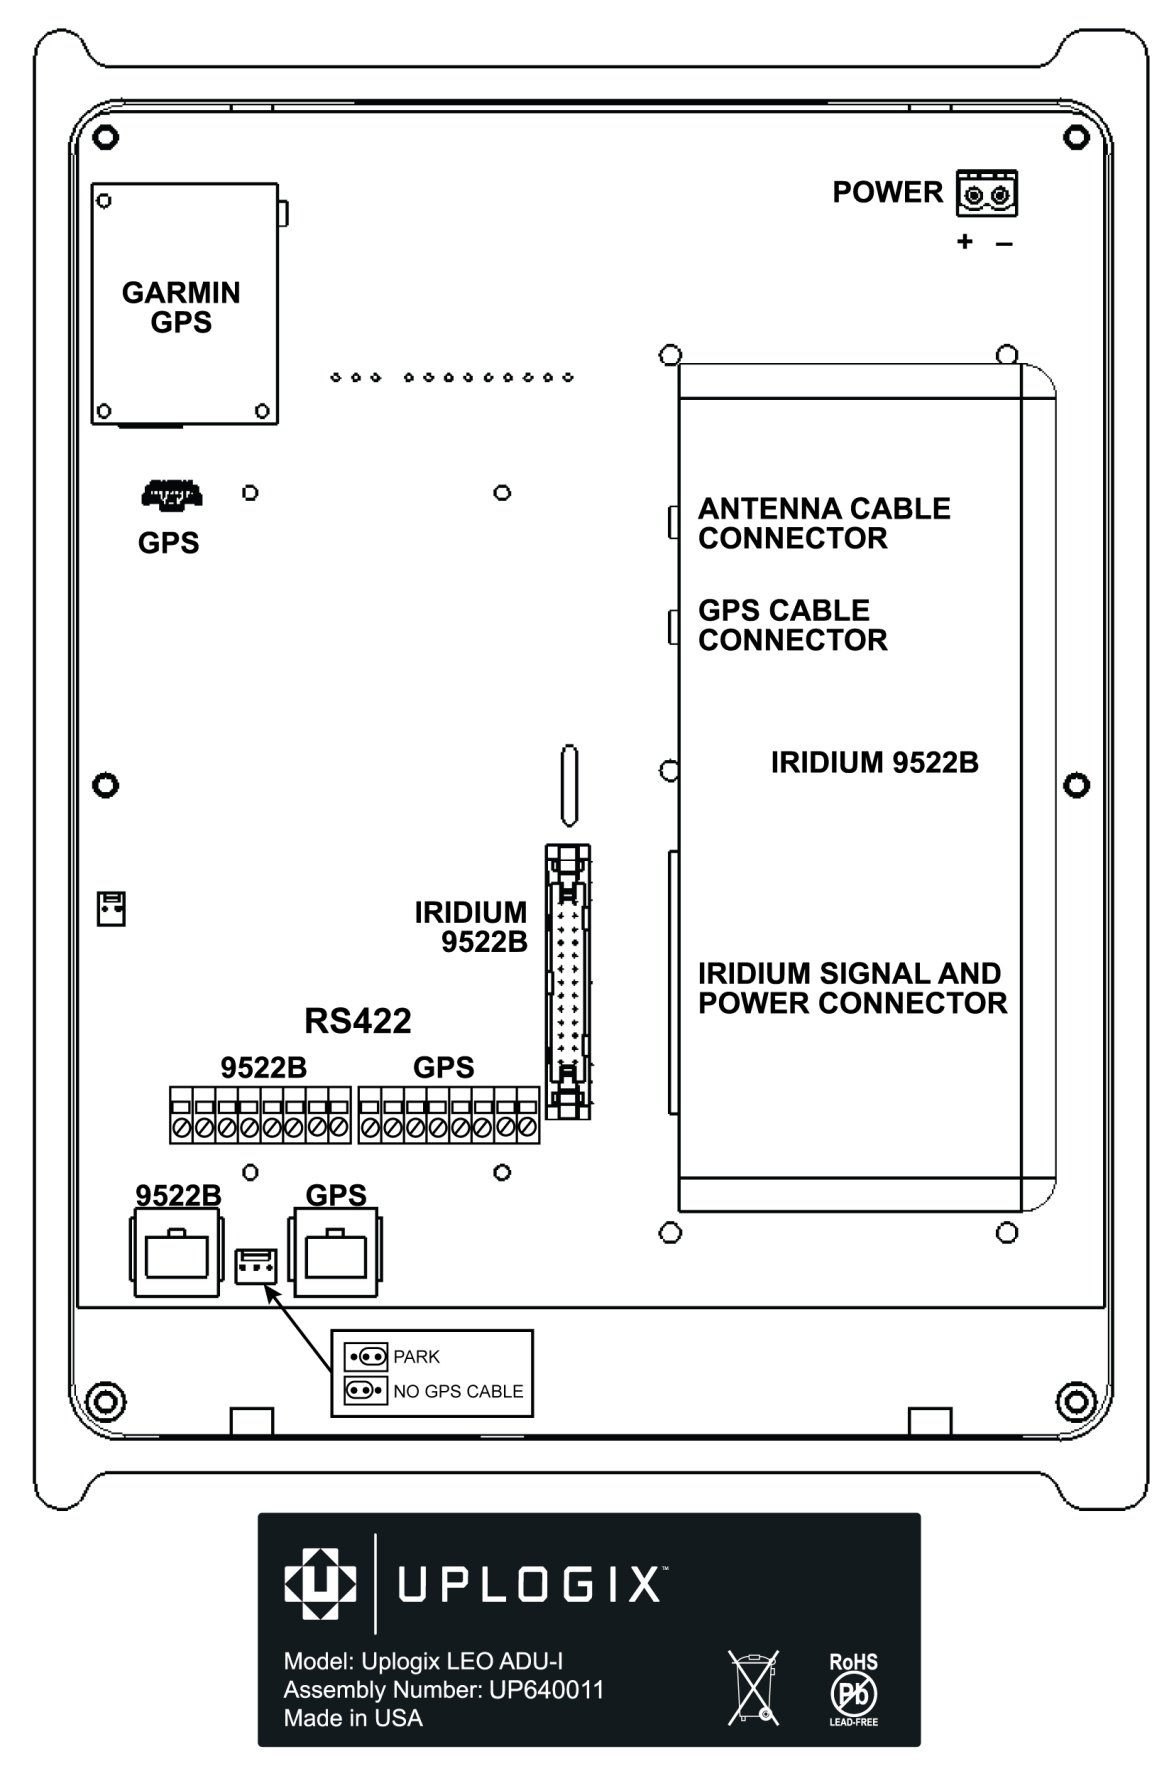 garmin usb power cable wiring diagram computer 2010 antenna schematics 37